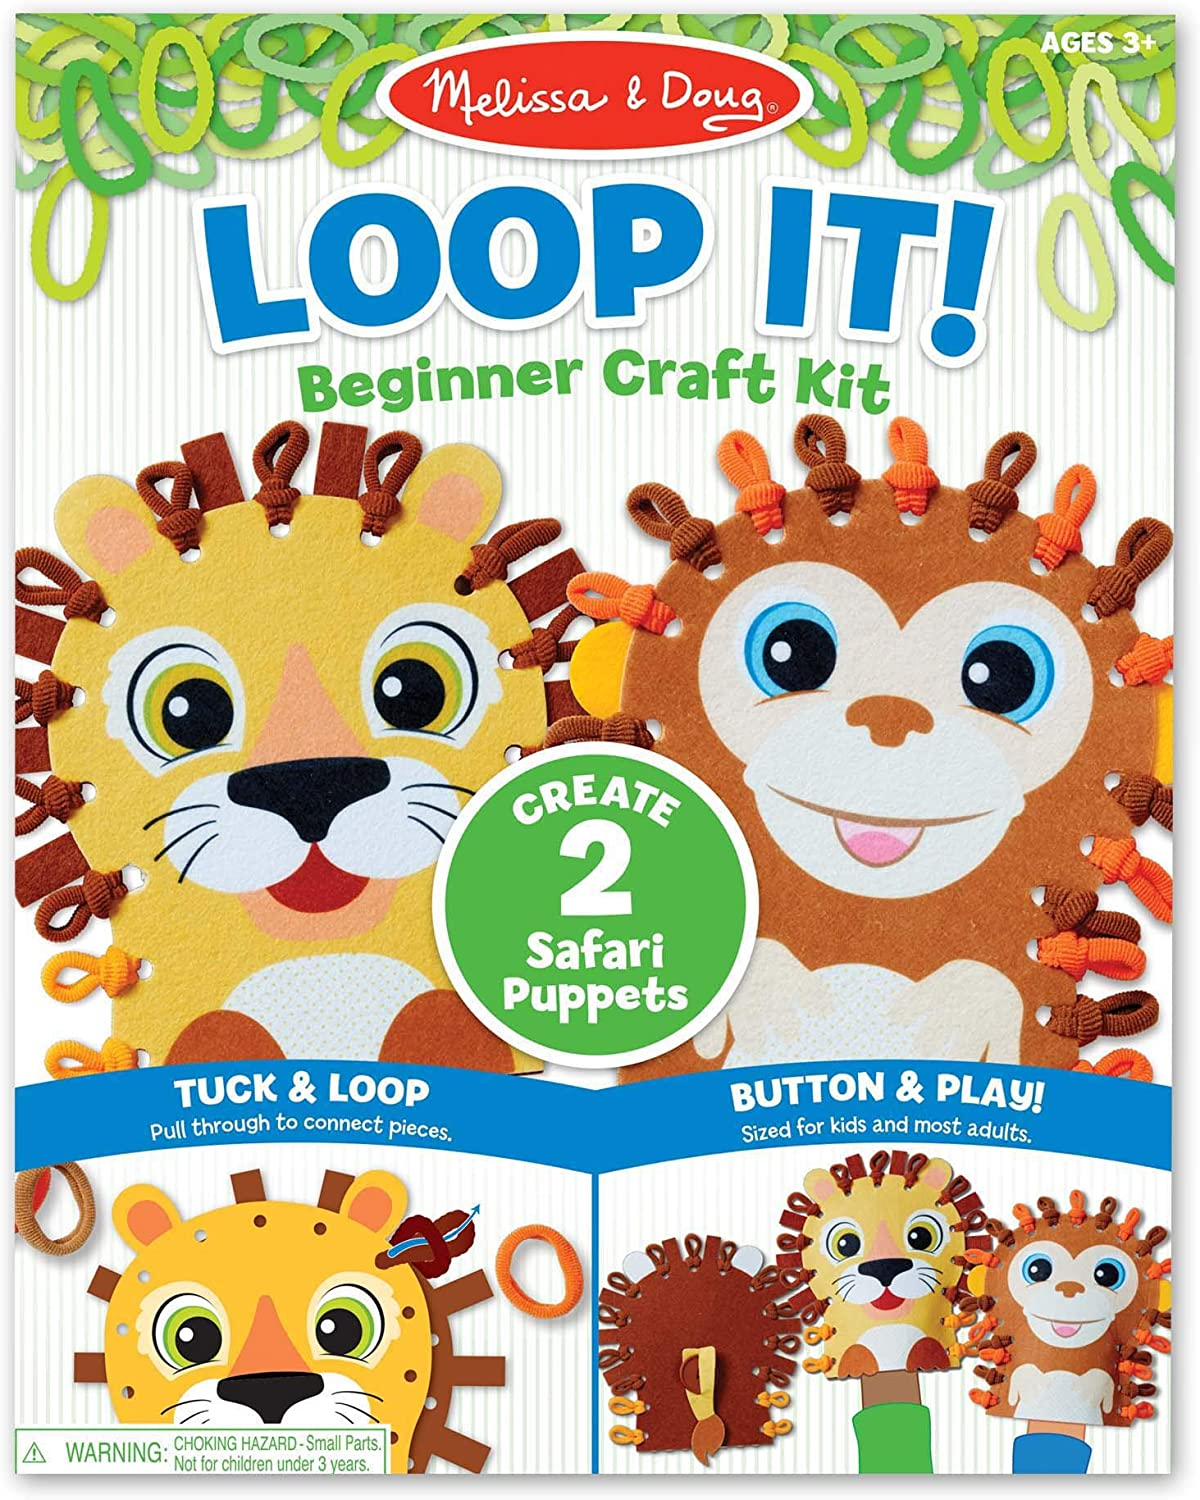 Safari Puppets Beginner Craft Kit Best for 3 40 Loops 30186 4 Lion and Monkey Felt Hand Puppets and 5 Year Olds Great Gift for Girls and Boys Melissa /& Doug Loop It